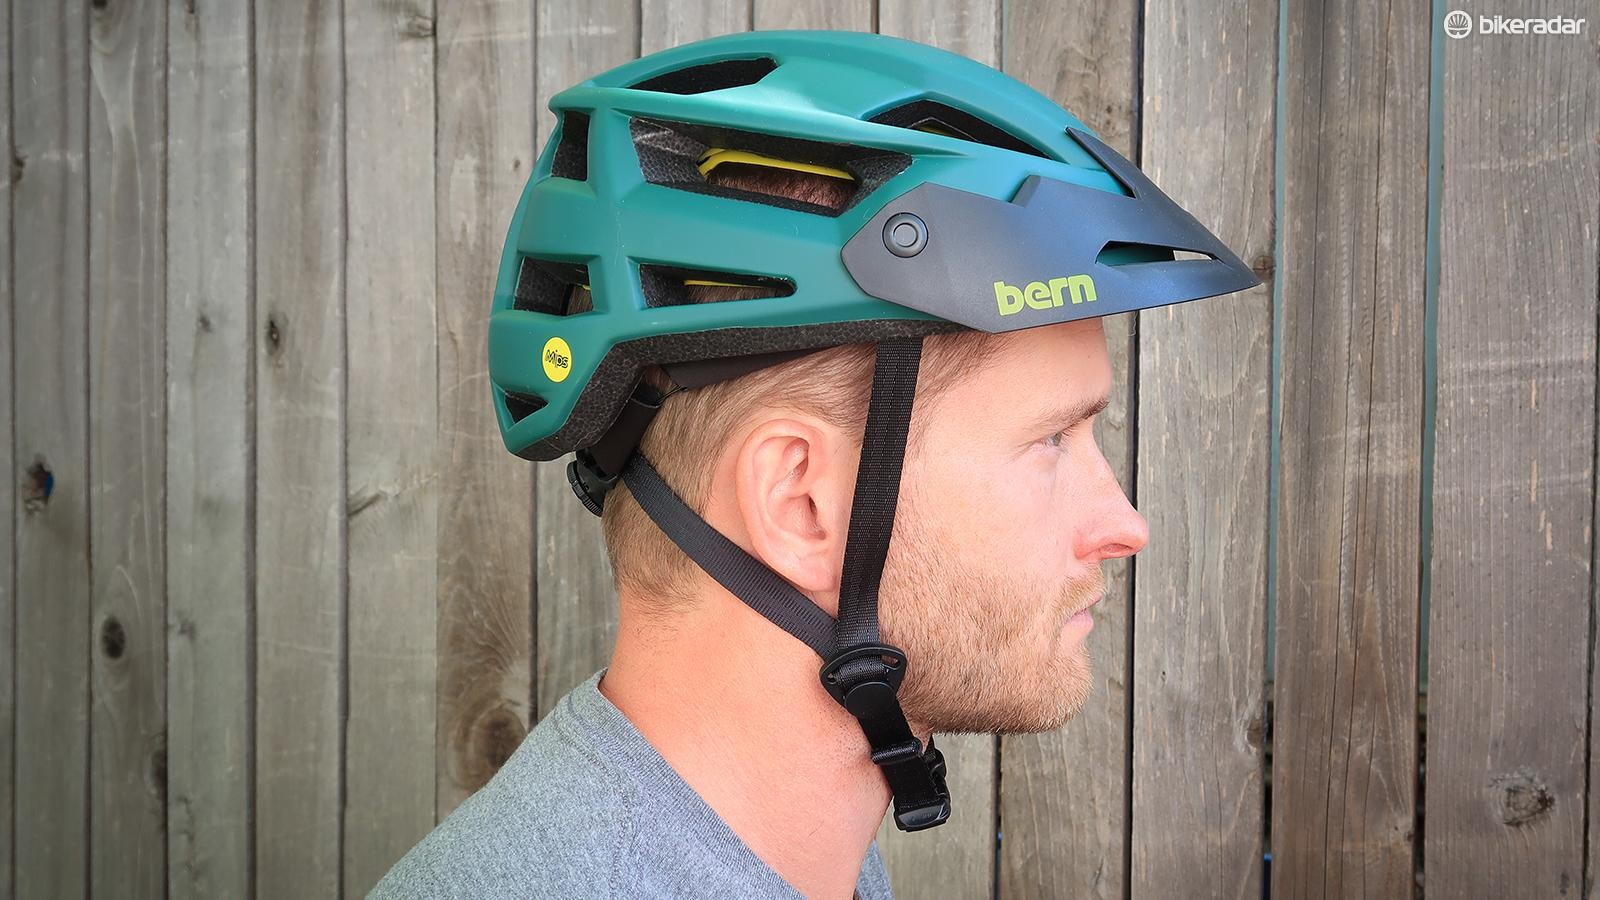 Bern's FL-1 XC is designed for mountain bikers